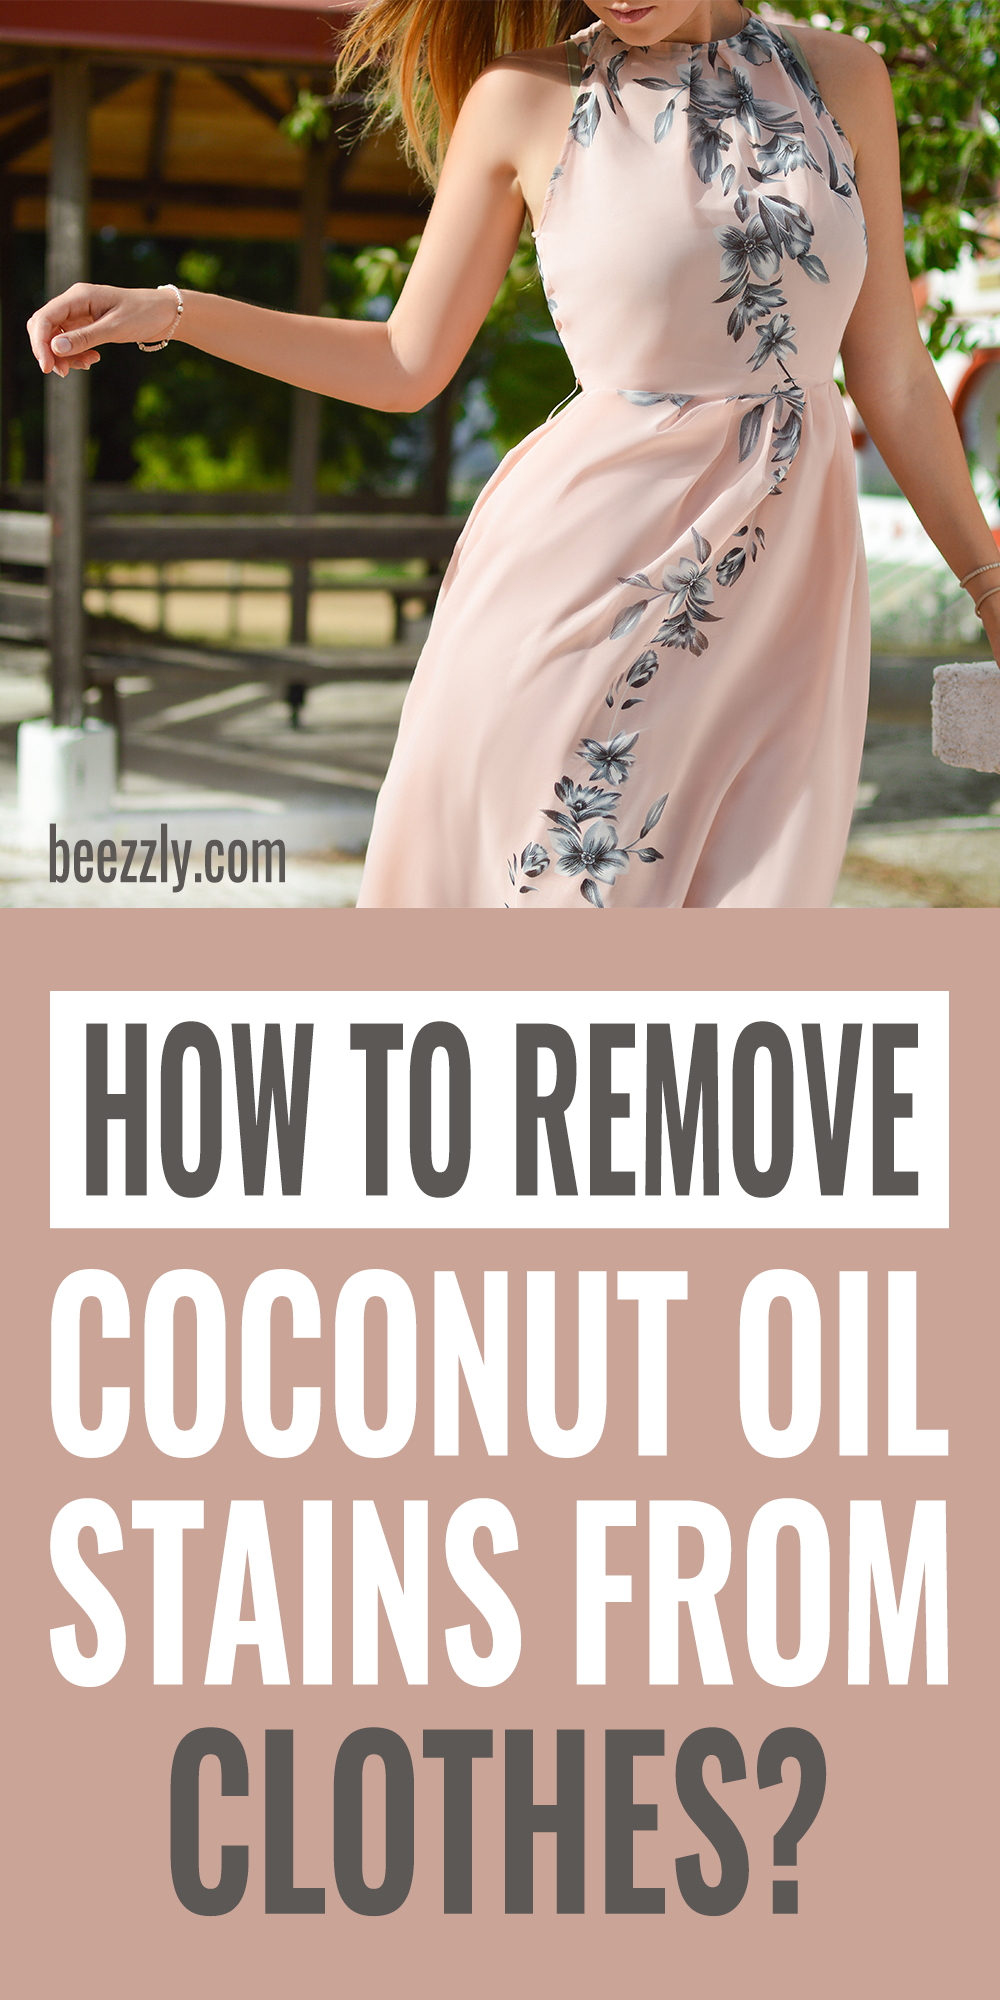 How to Remove Coconut Oil Stains From Clothes? in 2020